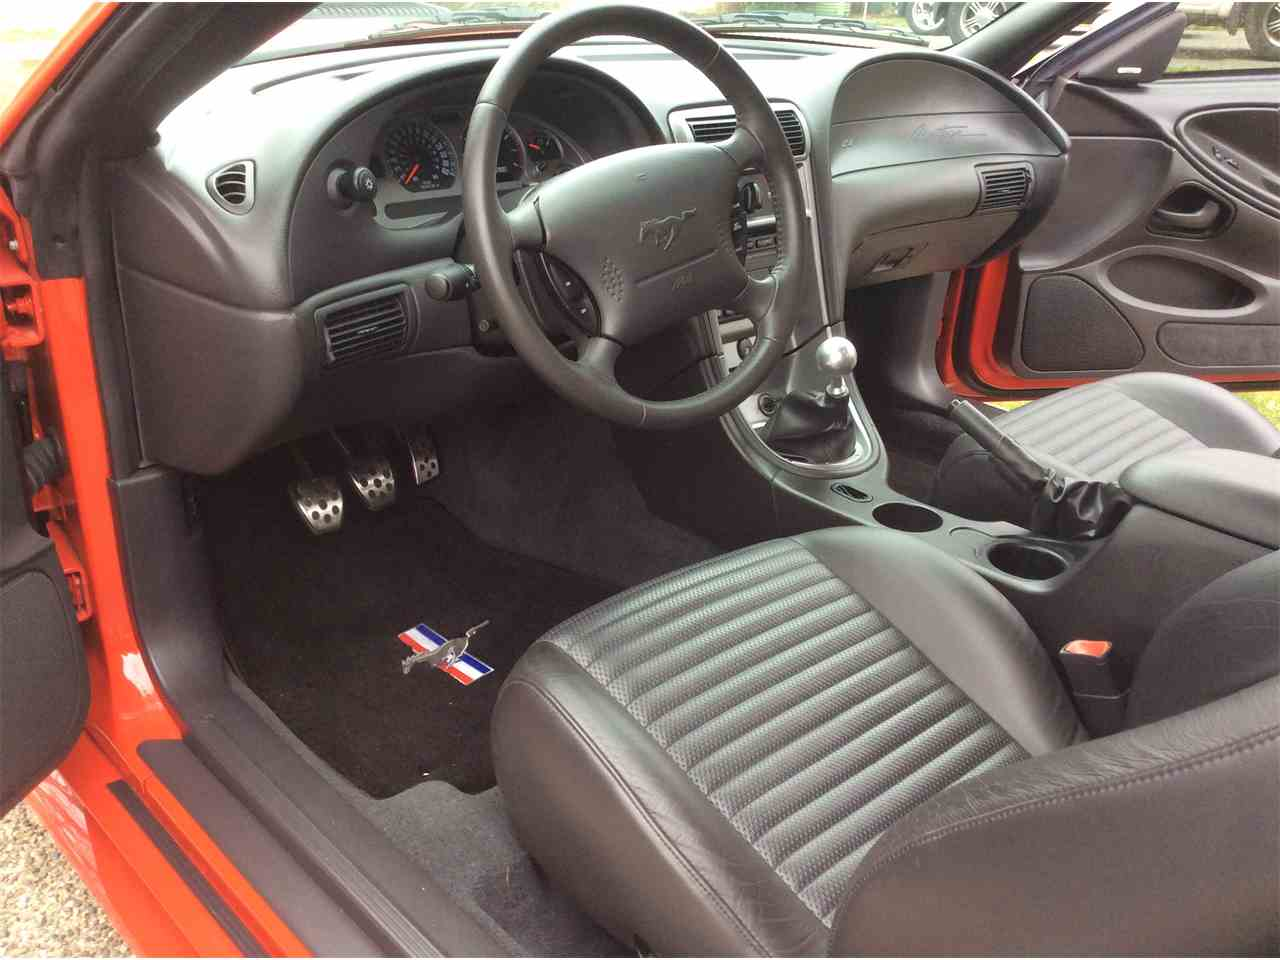 2004 Ford Mustang Mach 1 for Sale - CC-799498